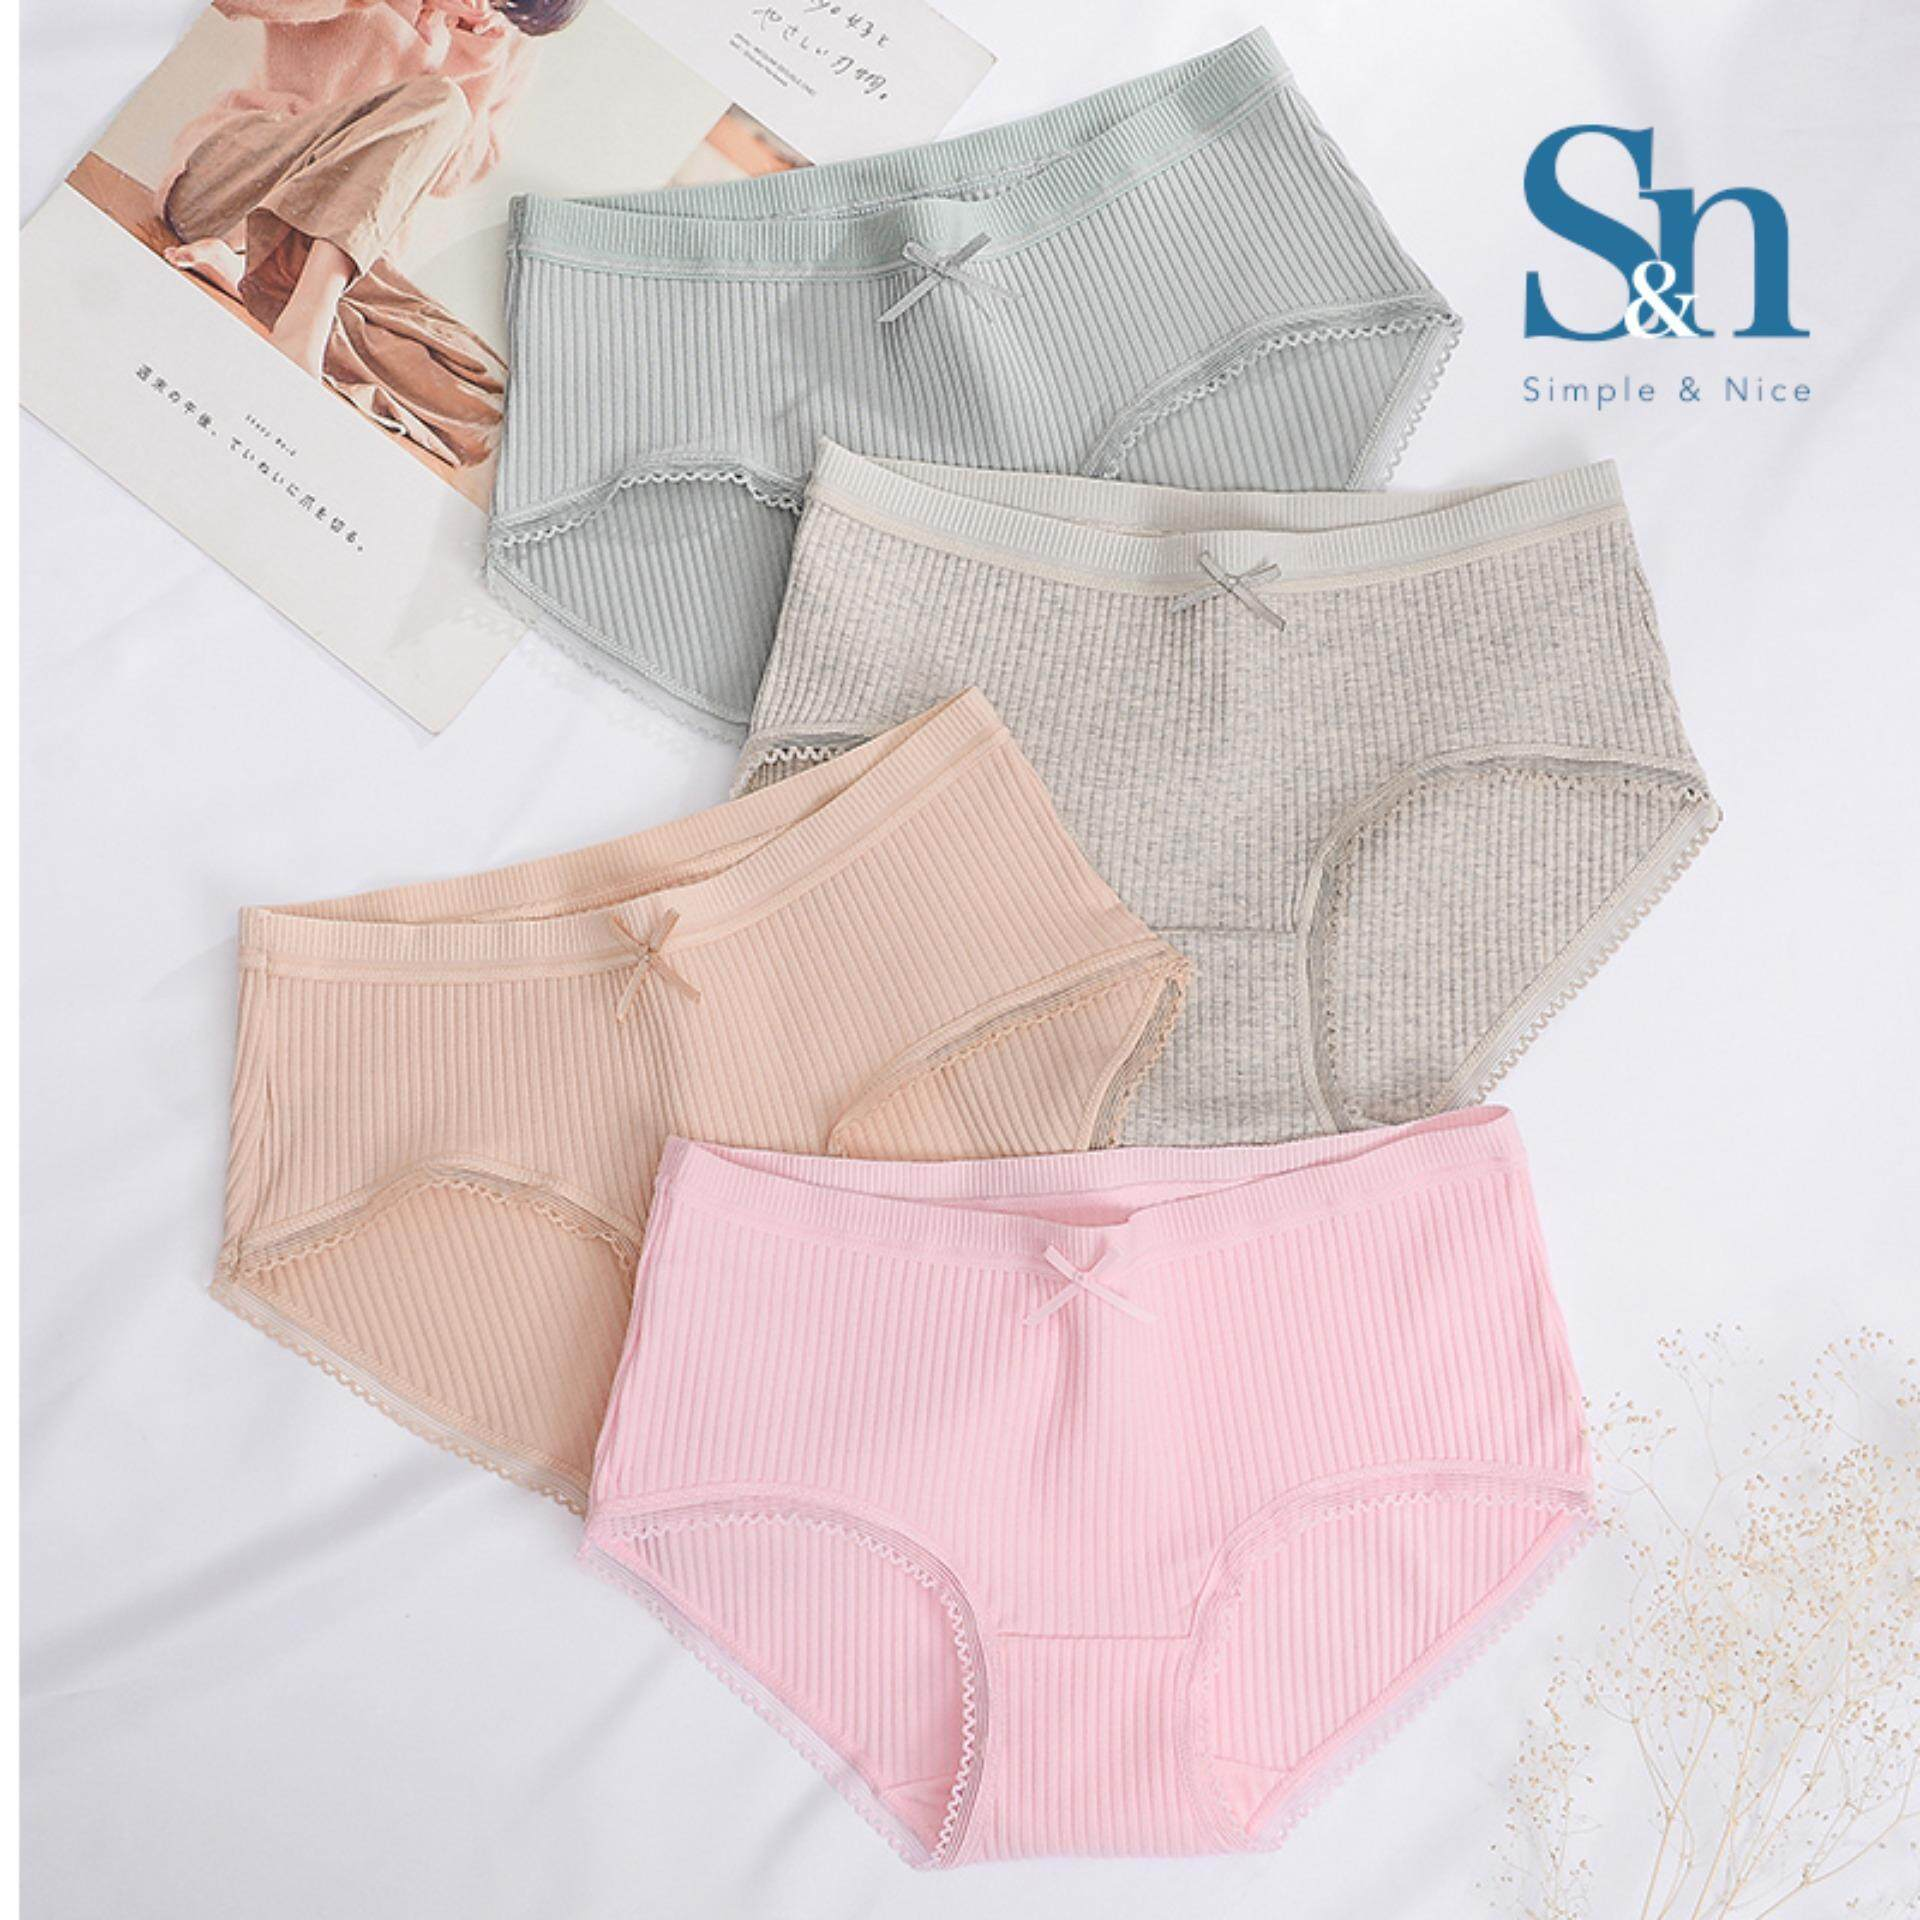 【7 Pcs Korean Premium Cotton Underwear】SIMPLE & NICE Women/Female/Girls Standard Plain Design Panties Underwear Inside Wear Set (M-L) Direct From Factory